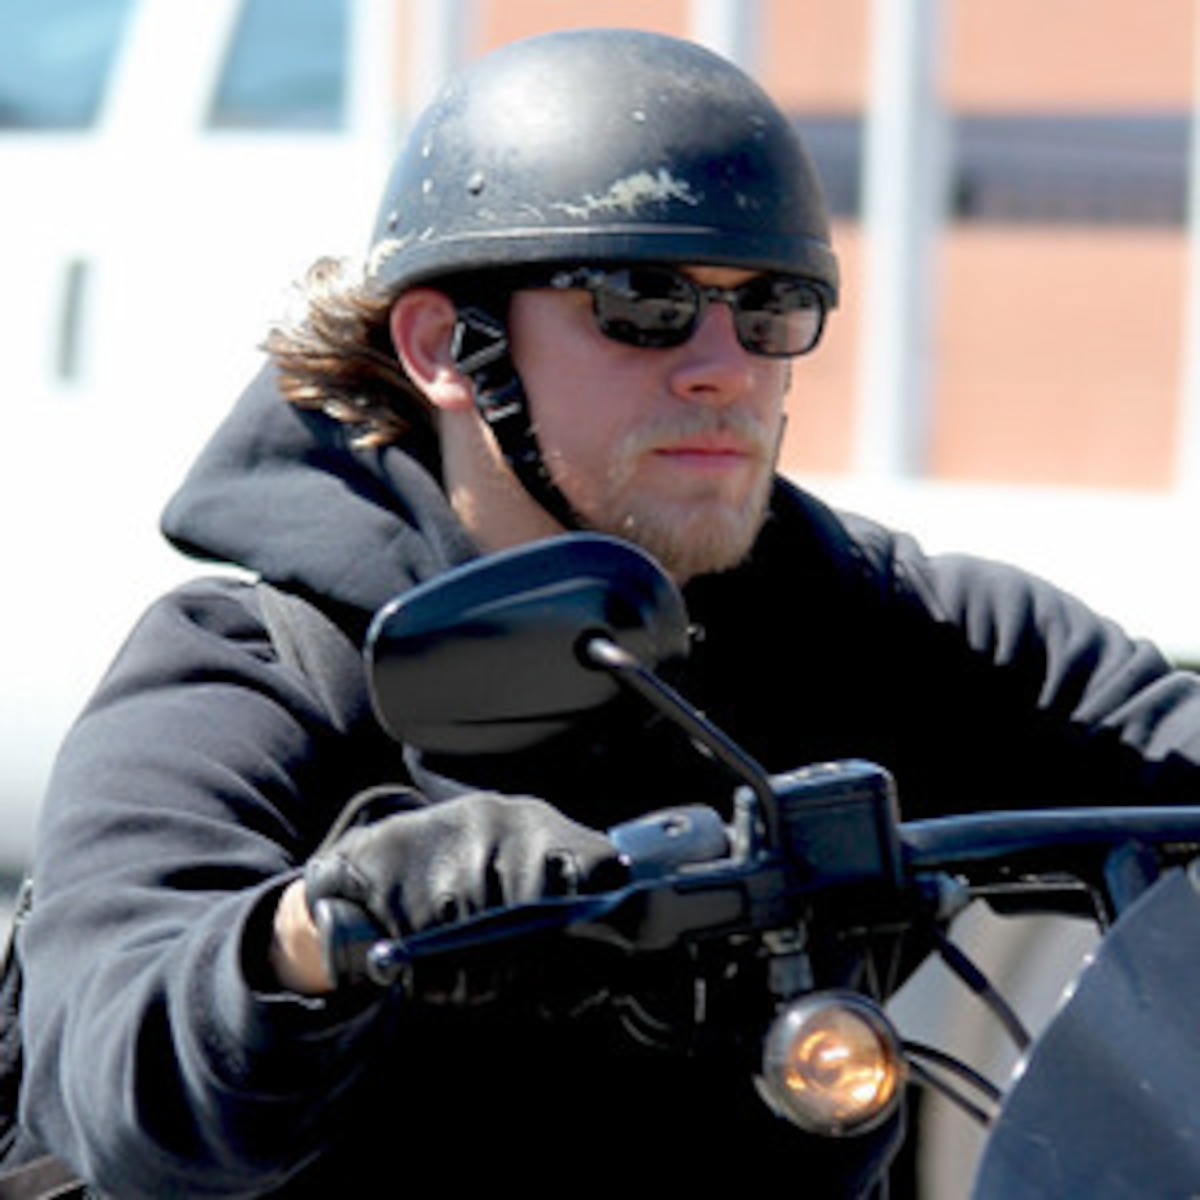 charlie hunnam naked on motorcycle